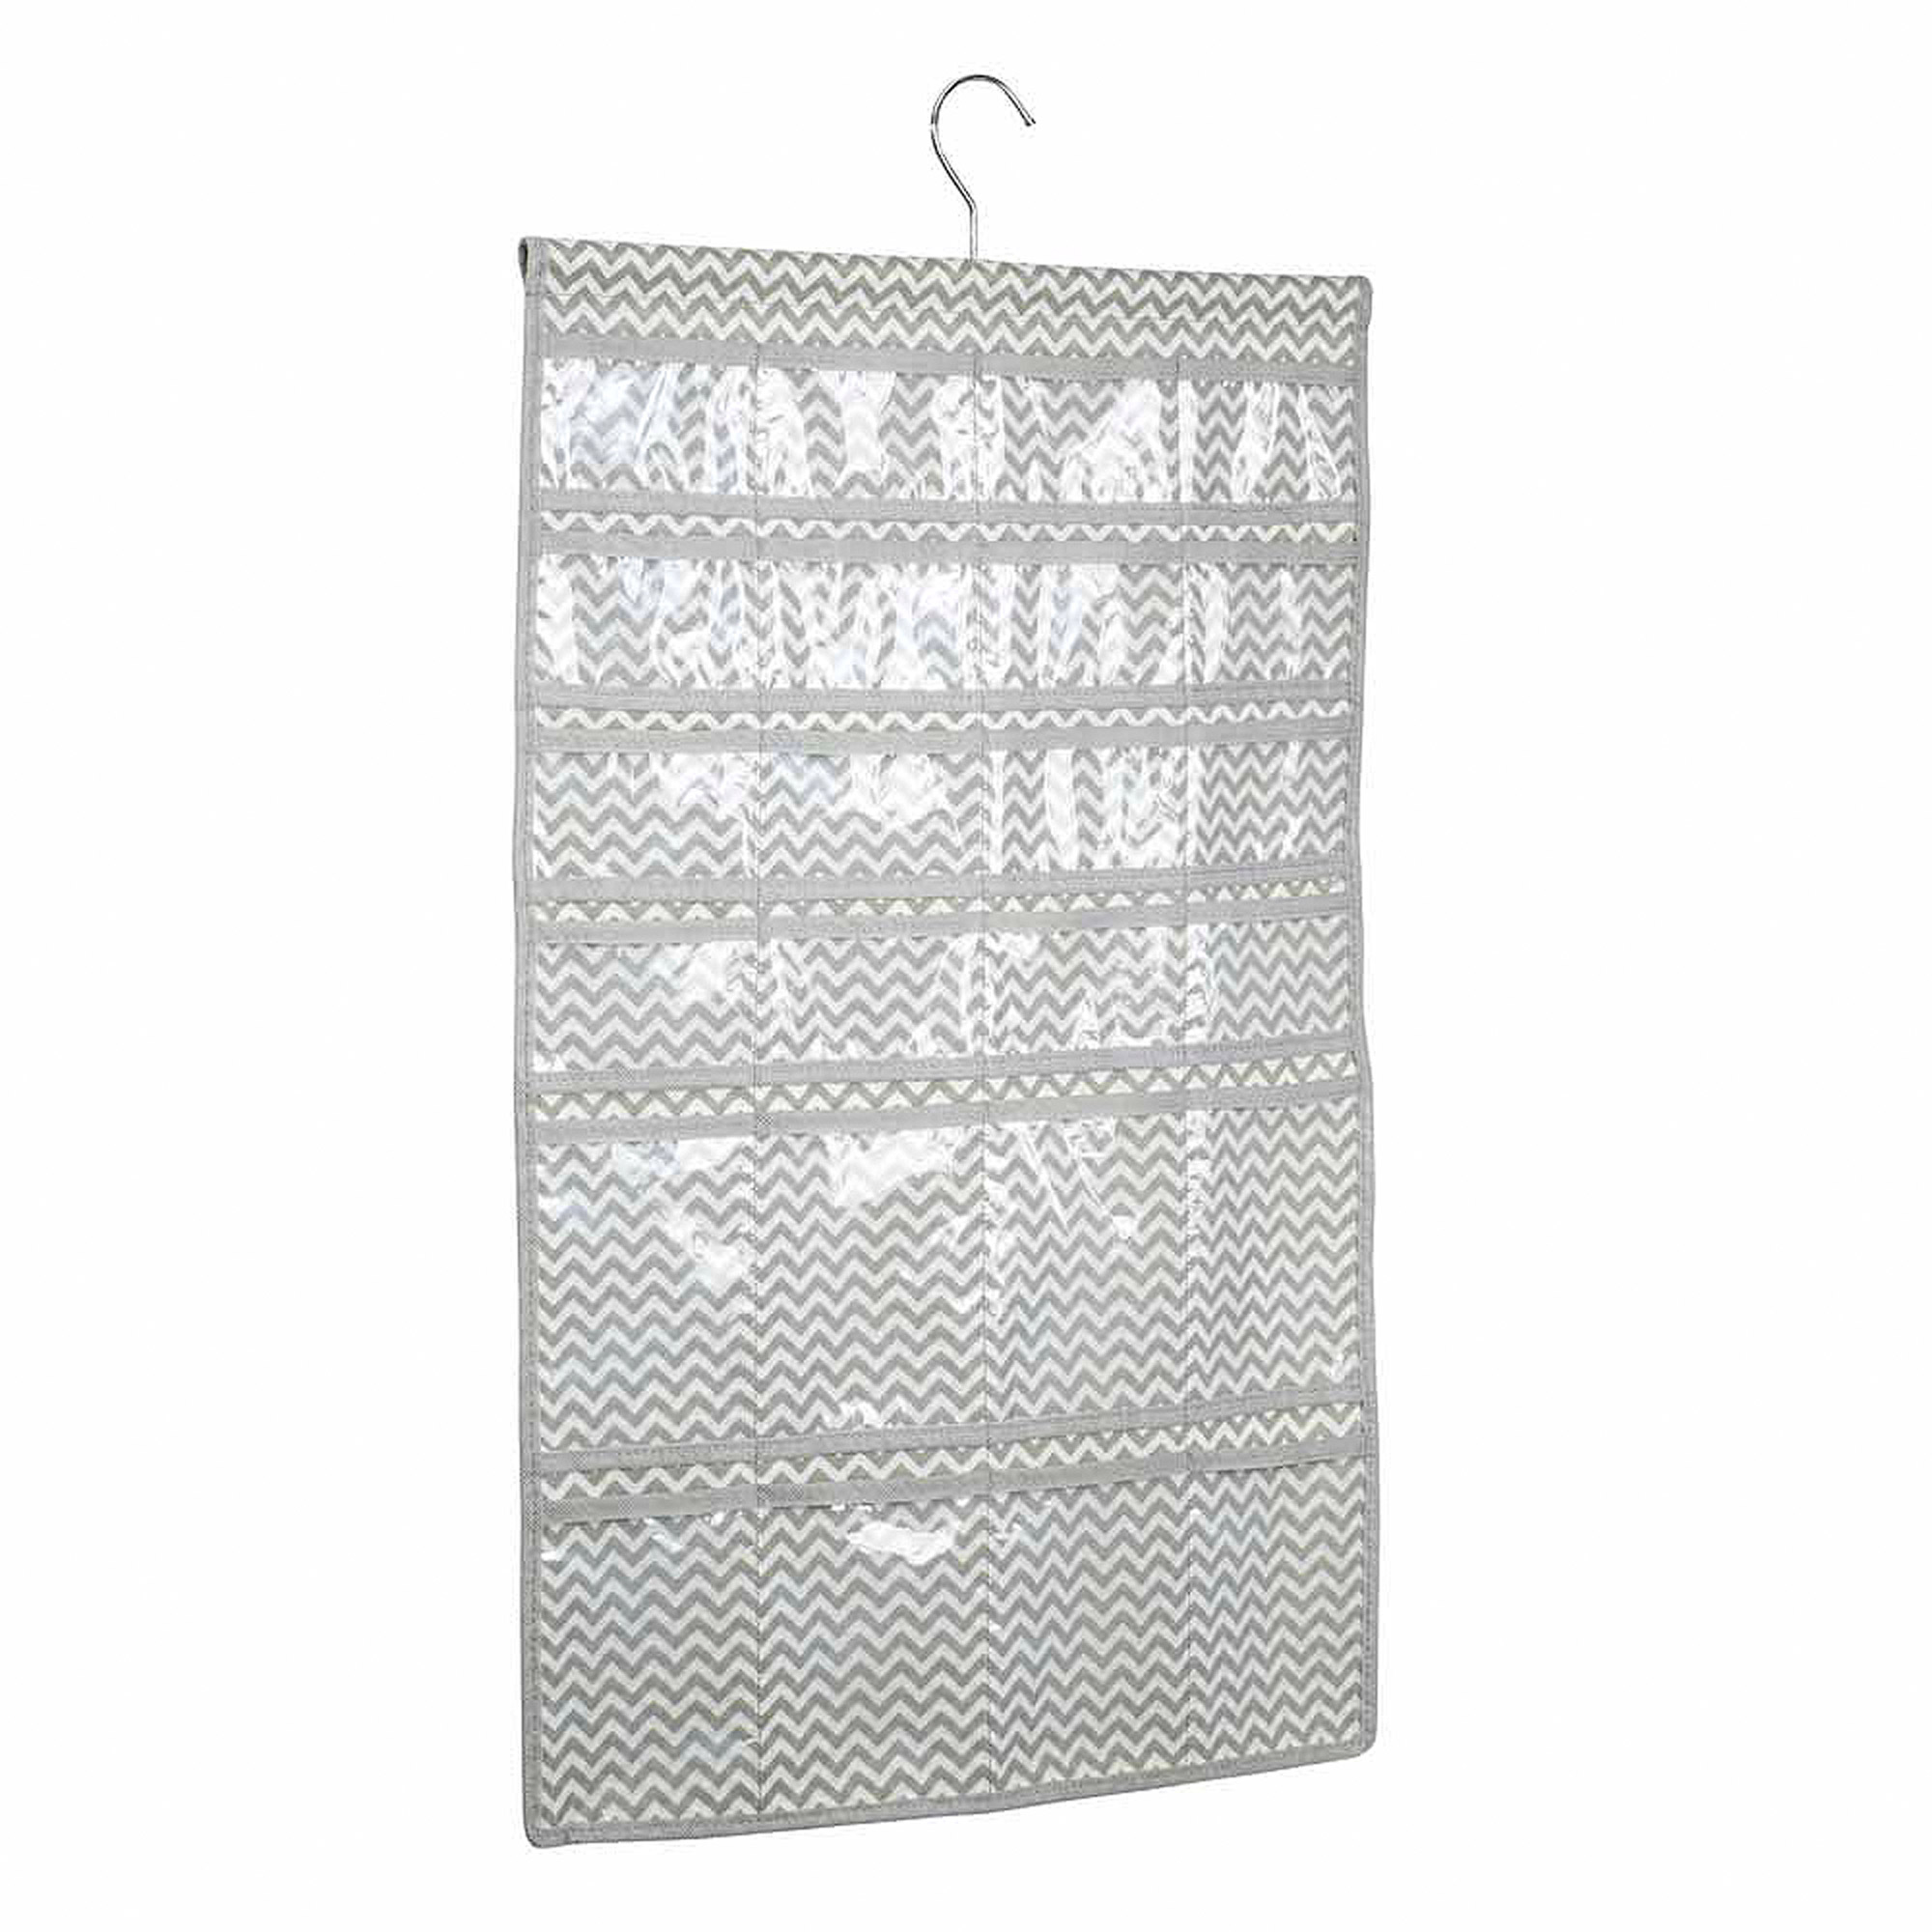 InterDesign Chevron Fabric Hanging Fashion Jewelry Organizer for